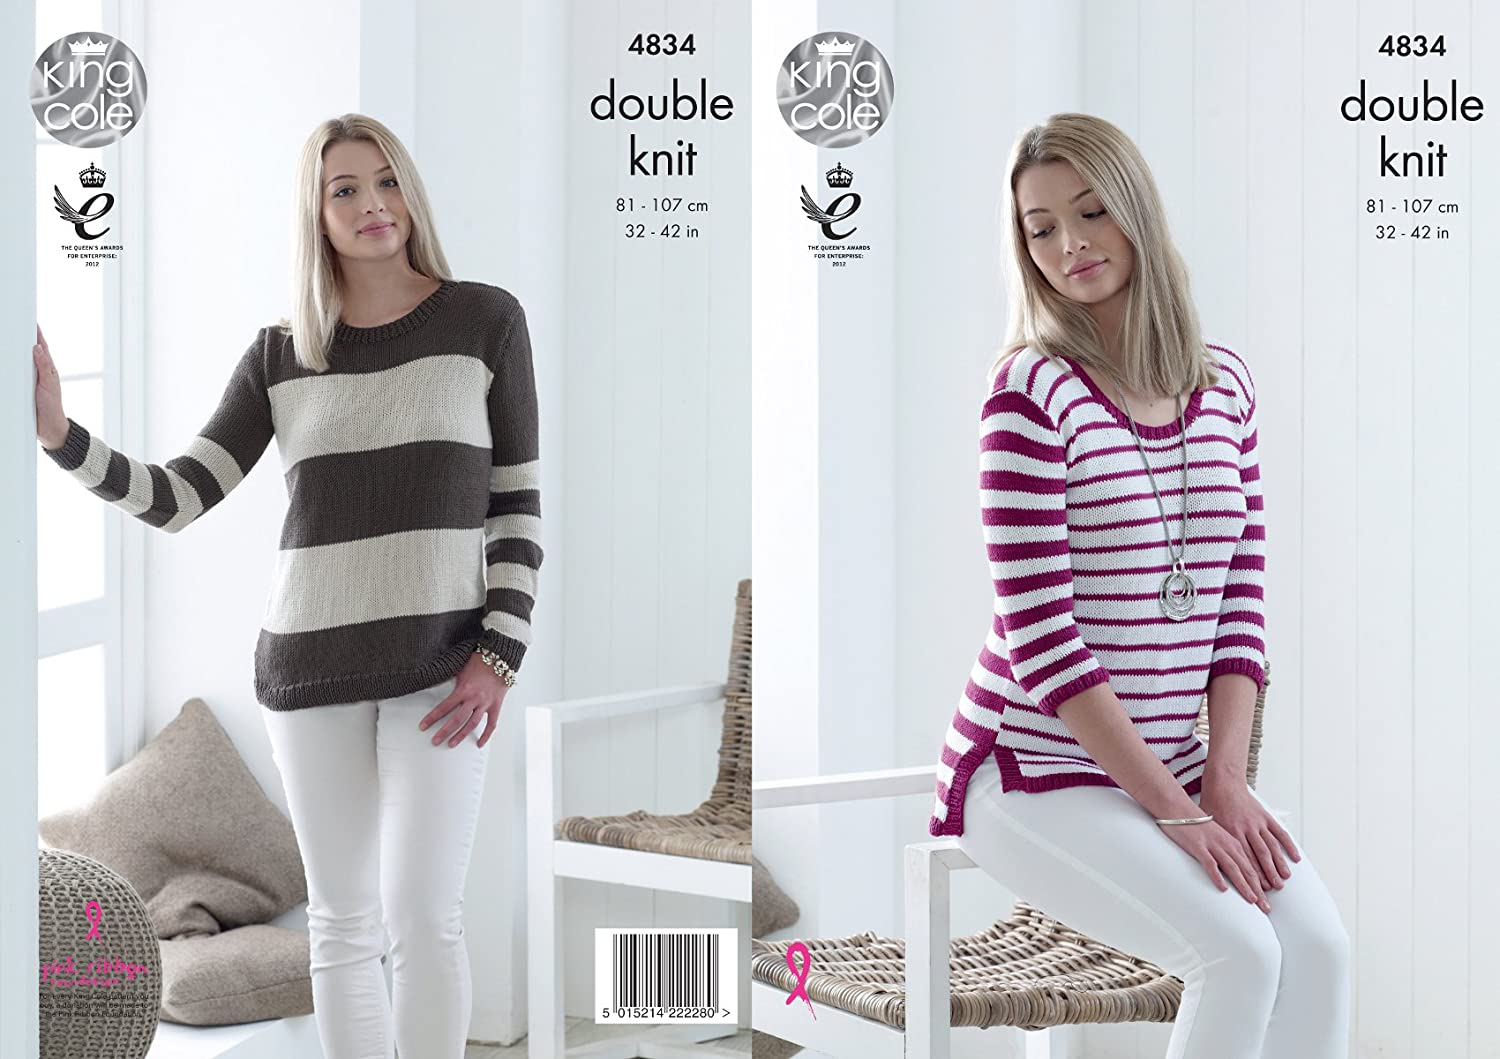 King Cole Ladies Double Knitting Pattern Jumpers Sweaters with Fine or Broad Stripes (4834)